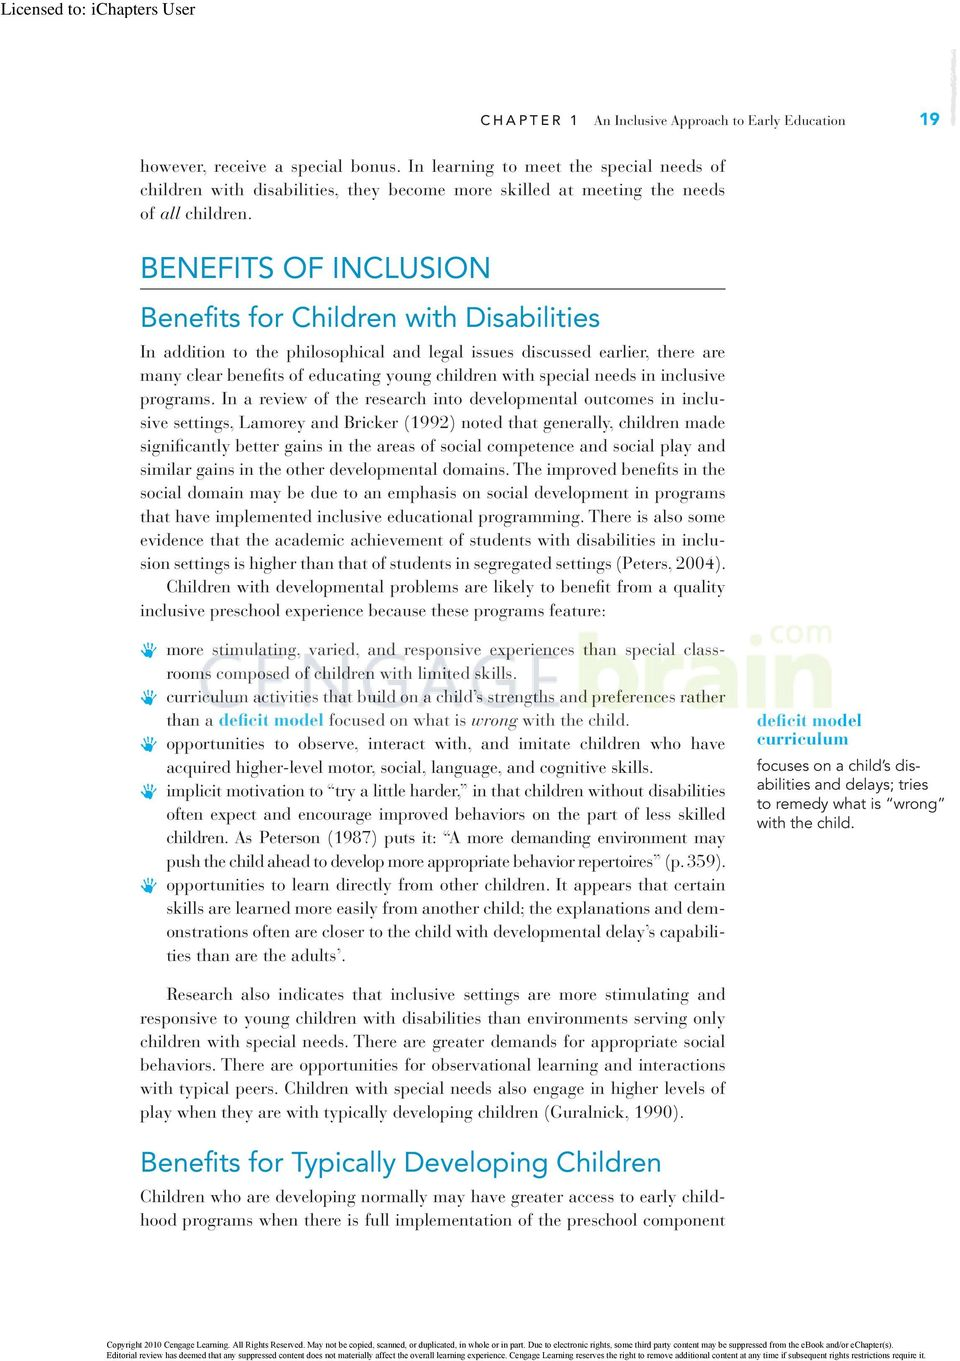 BENEFITS OF INCLUSION Benefits for Children with Disabilities In addition to the philosophical and legal issues discussed earlier, there are many clear benefits of educating young children with